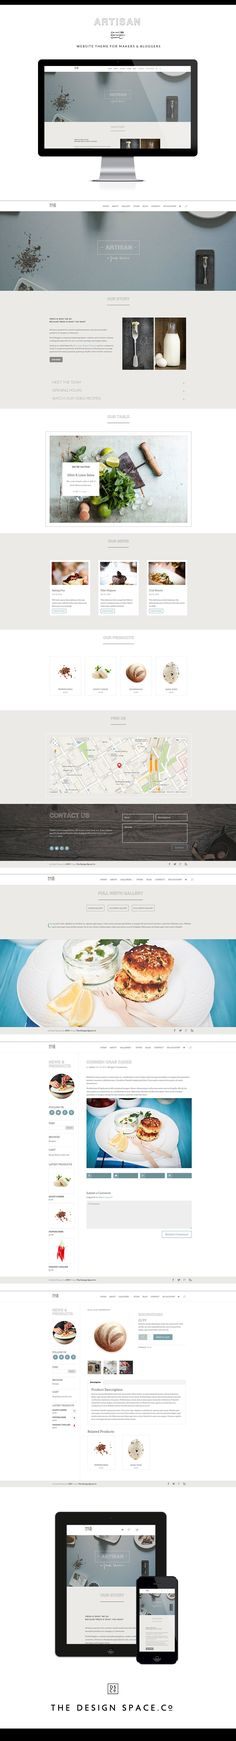 Artisan Website Theme for Crafters, Foodies & Bloggers. Website design, ProPhoto, food blog, crafting website, WordPress theme